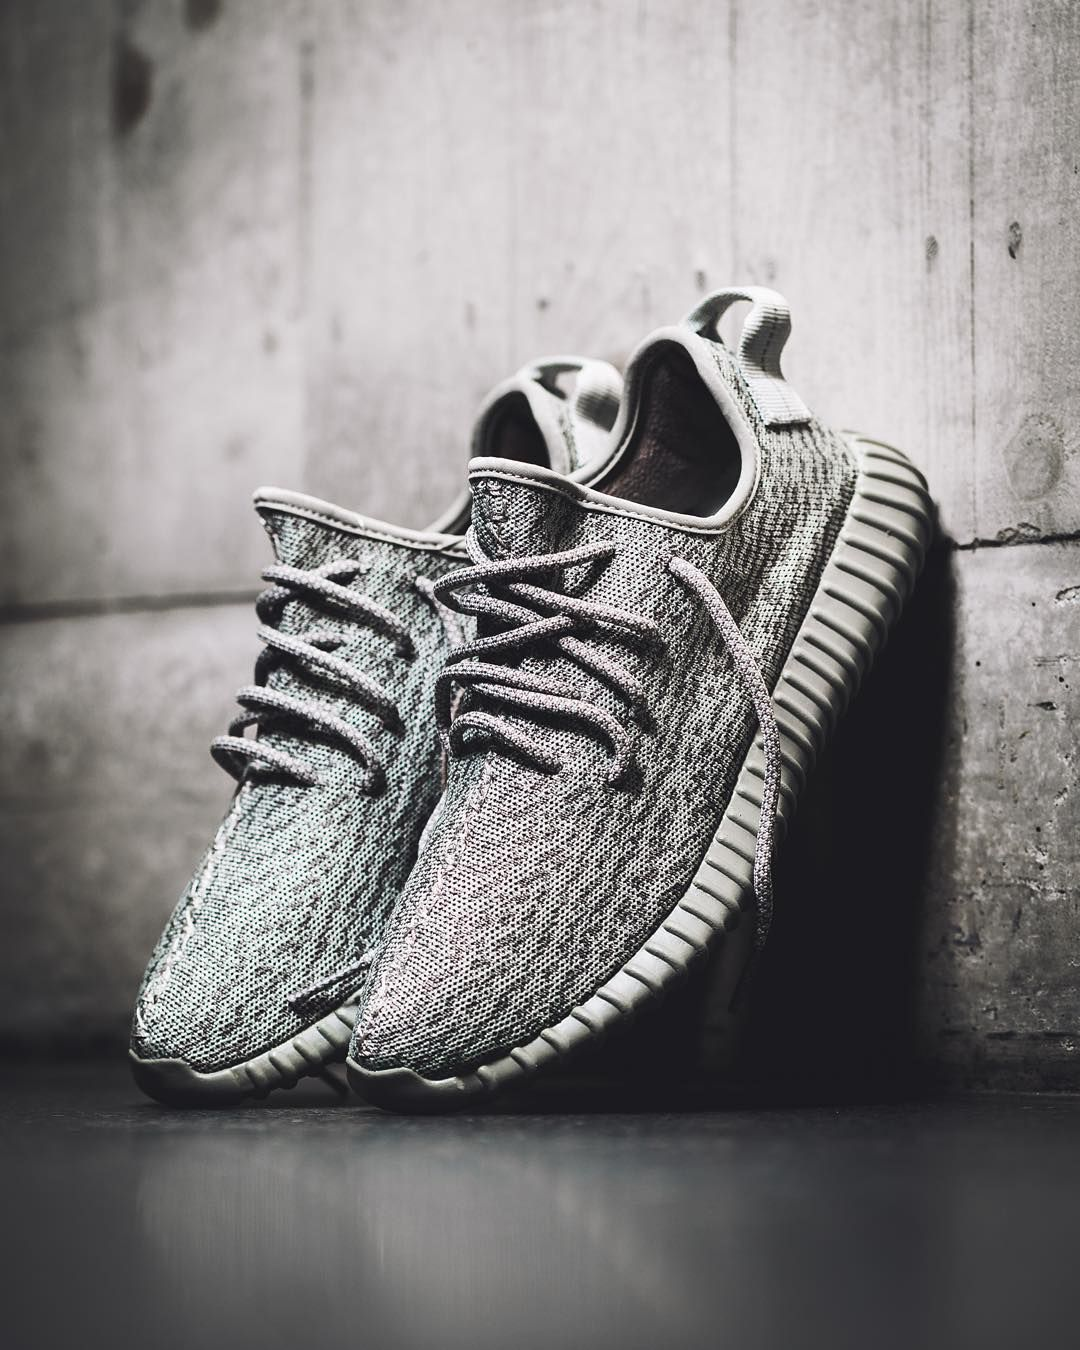 Adidas Yeezy Grey And White